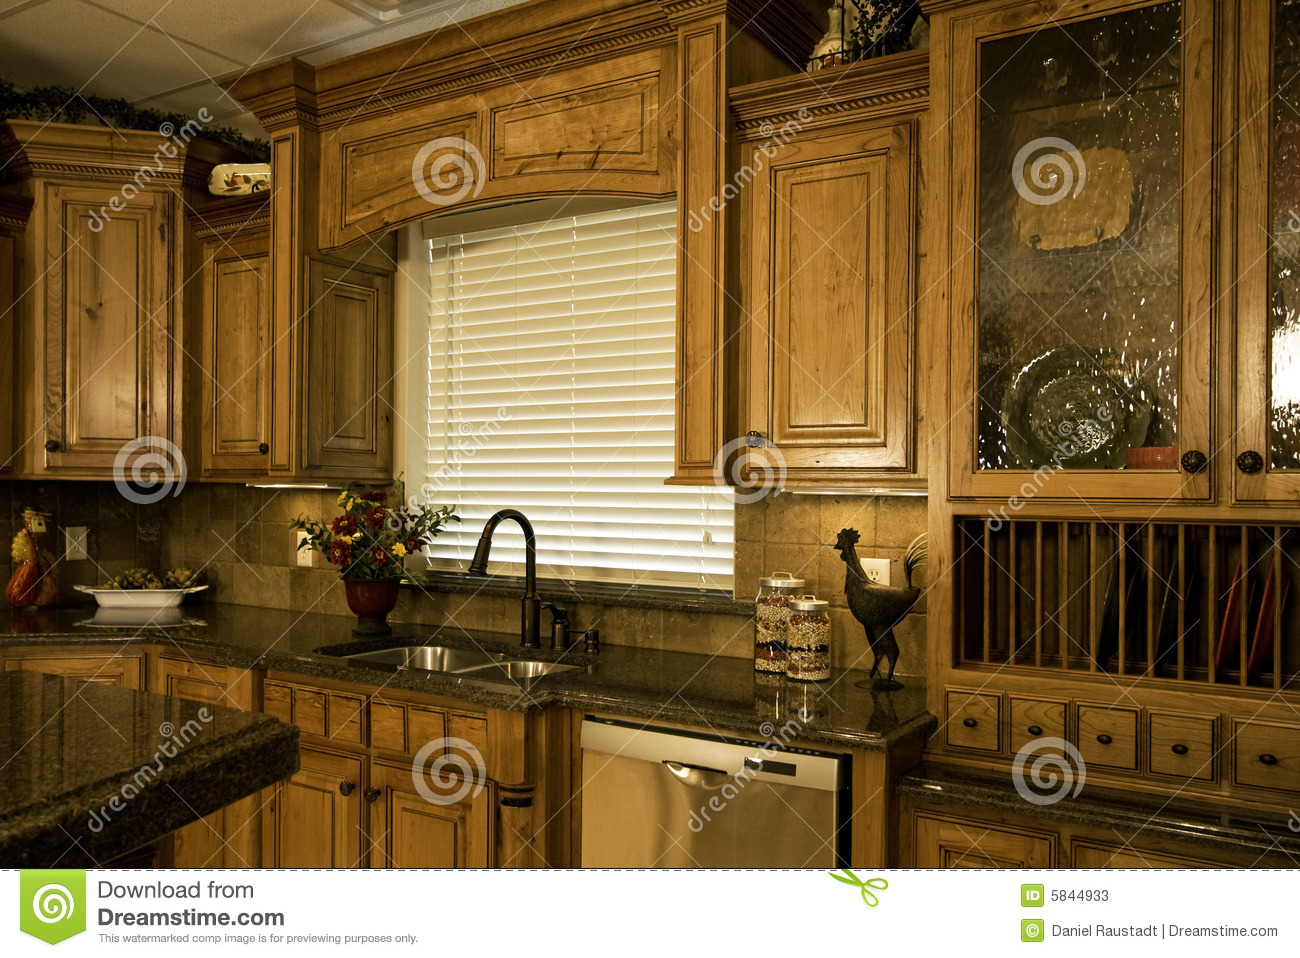 Custom Kitchen Cabinets San Diego Organized Luxury Kitchen Stock Photos Image 5844933